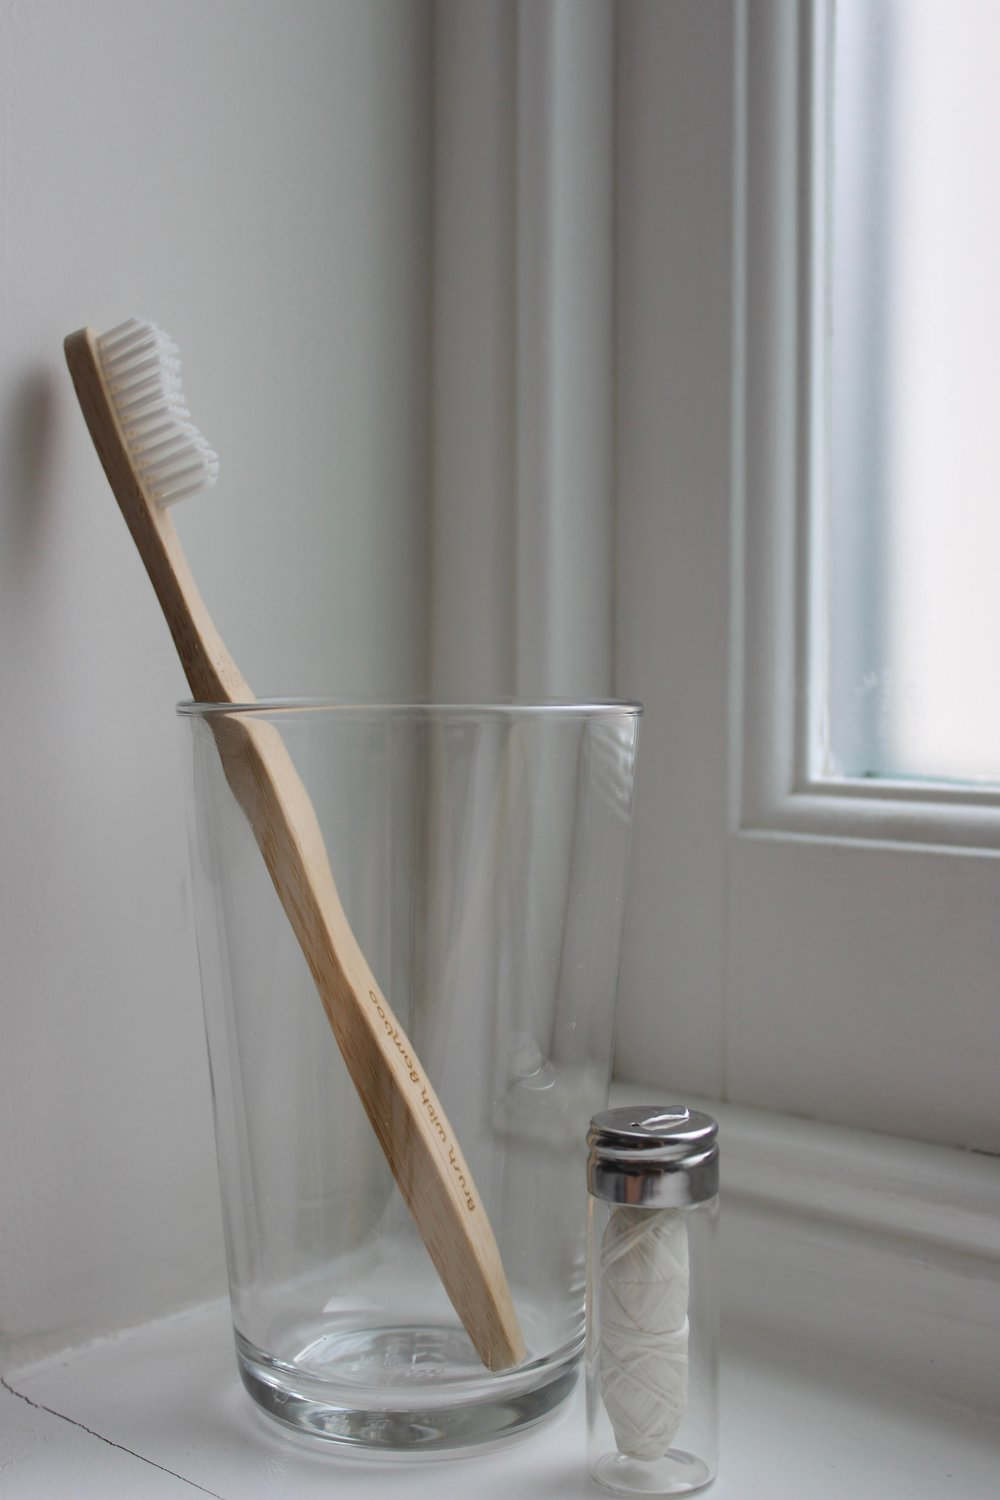 A better zero waste toothbrush with Brush with Bamboo | Litterless